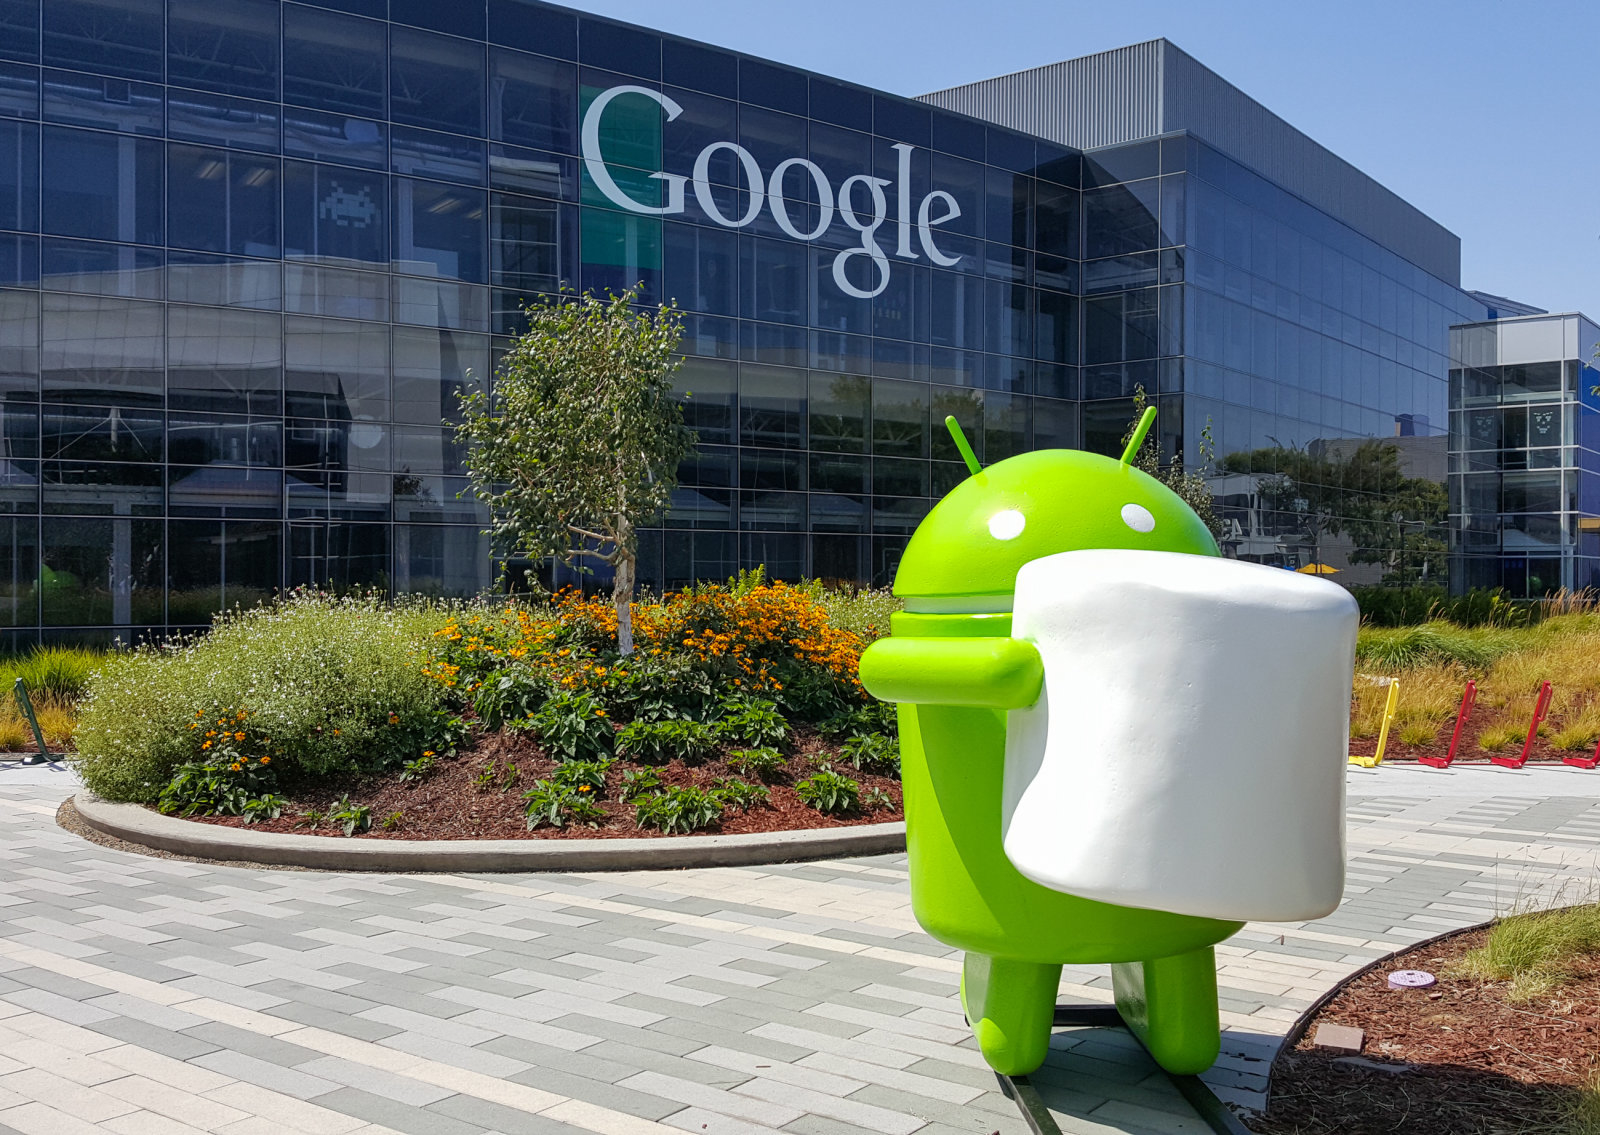 Mountain View, CA, USA - August 19, 2015: Android Marshmallow (latest android OS) replica in front of Google office on Aug 19, 2015. Google specializes in Internet related services and products.